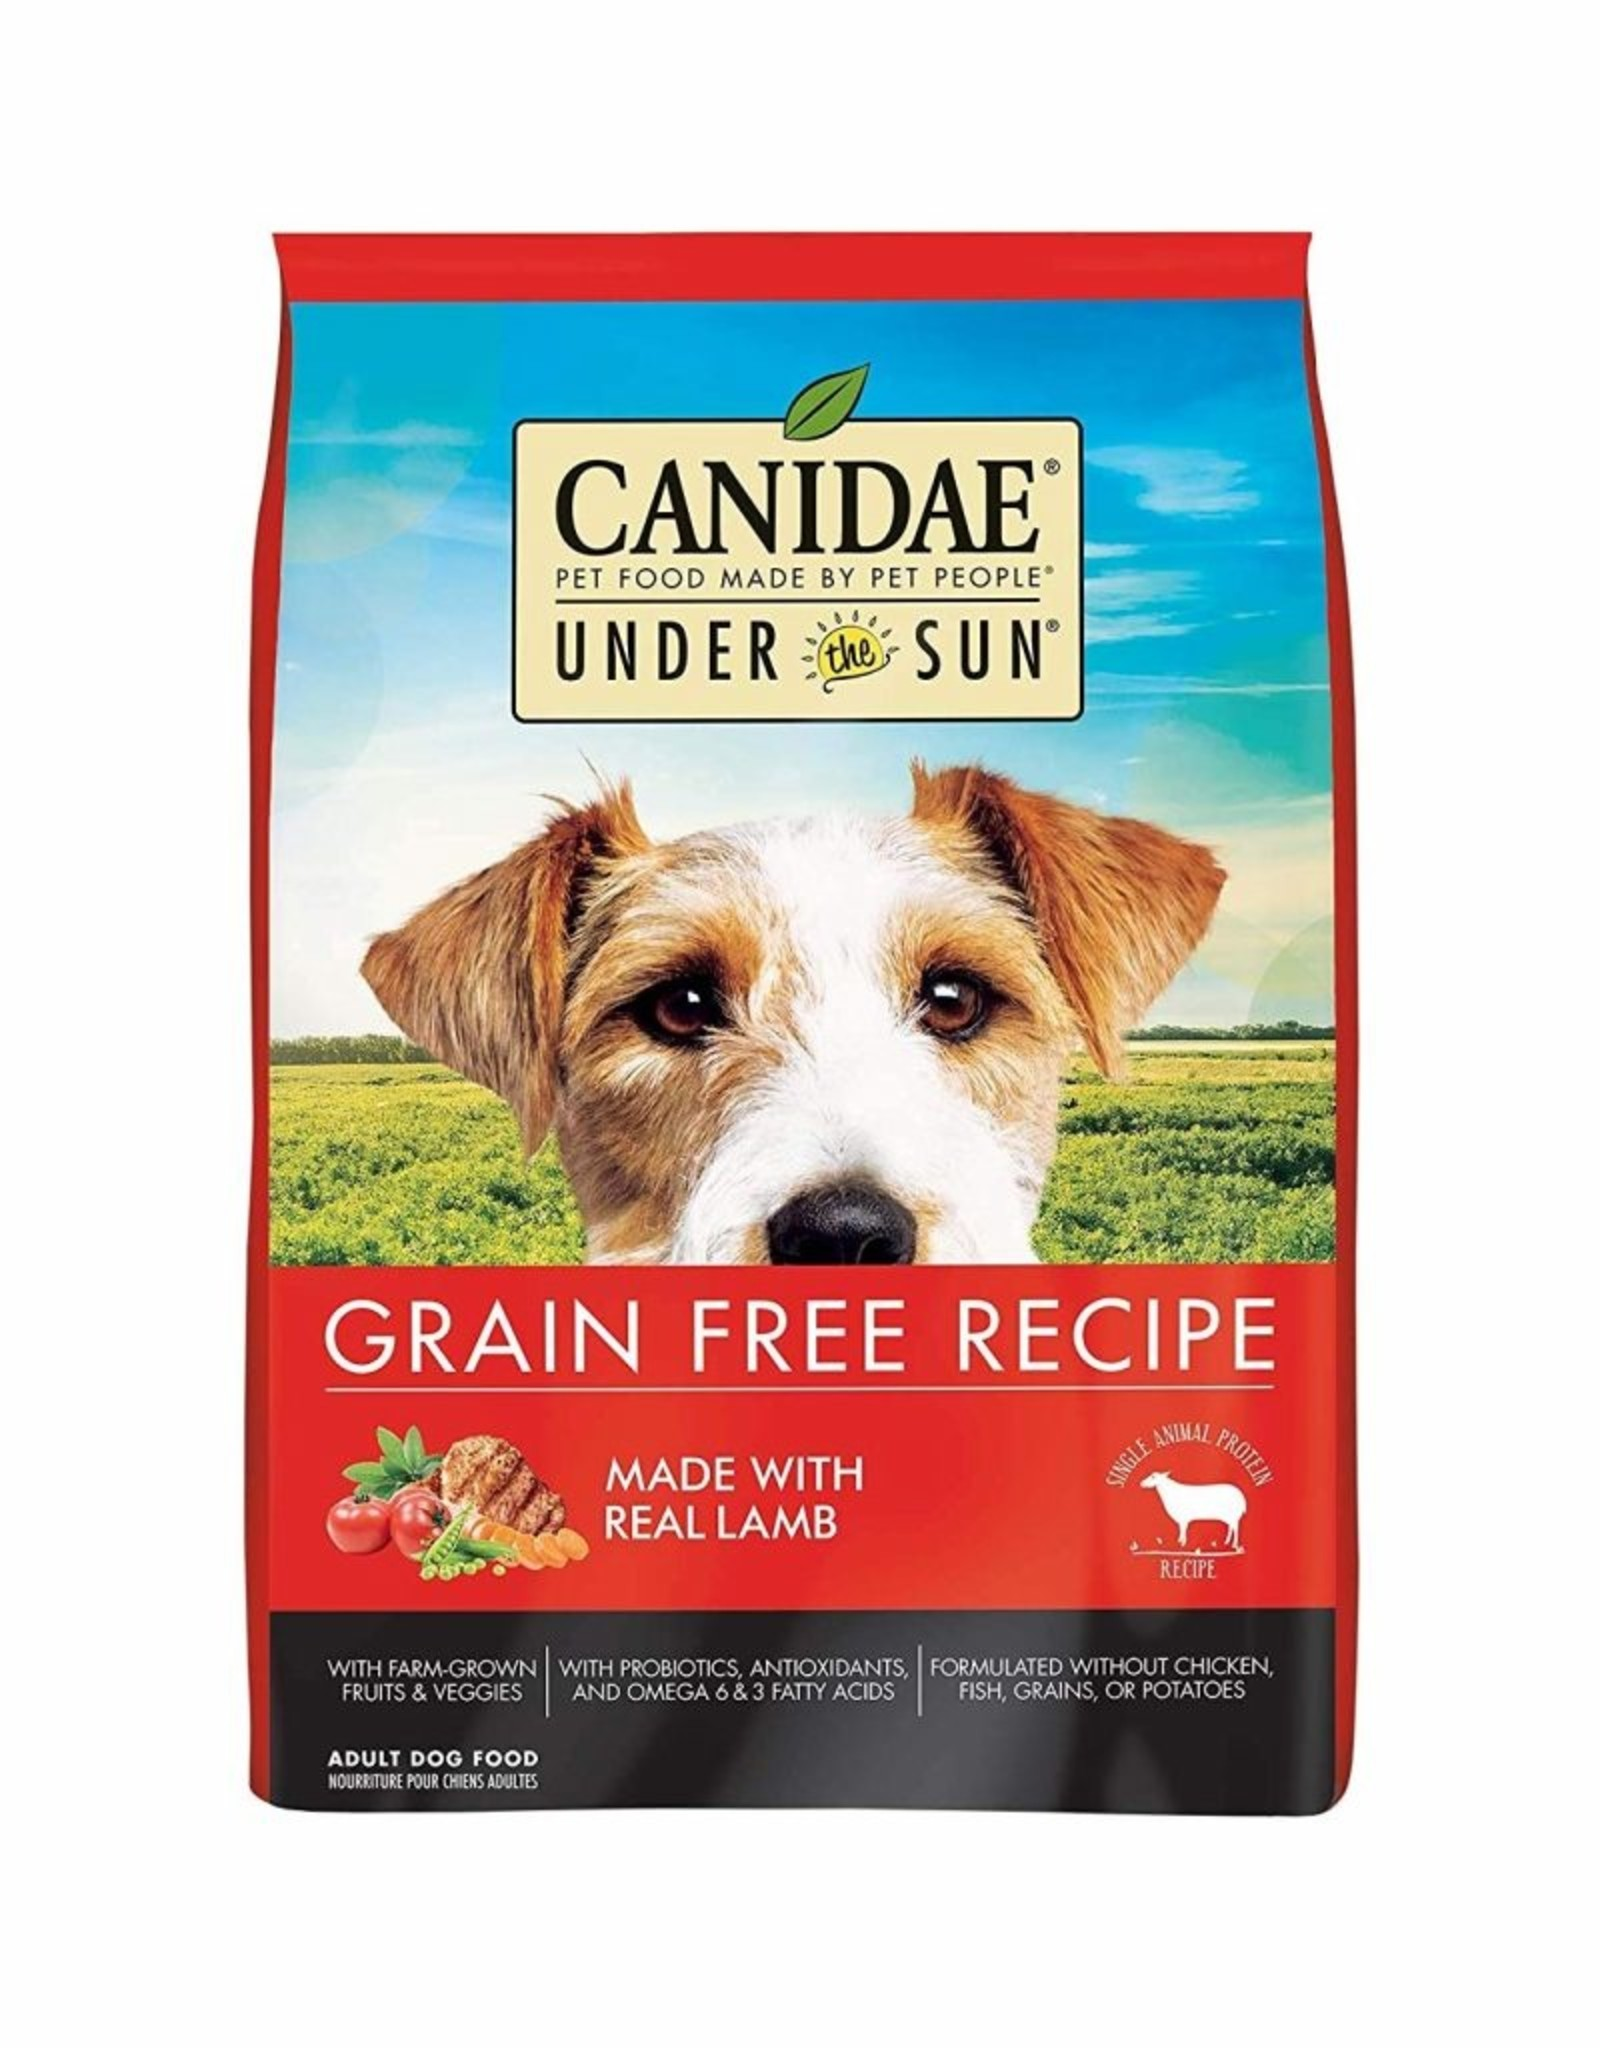 CANIDAE PET FOODS CANIDAE DOG UNDER THE SUN GRAIN FREE LAMB 25LBS